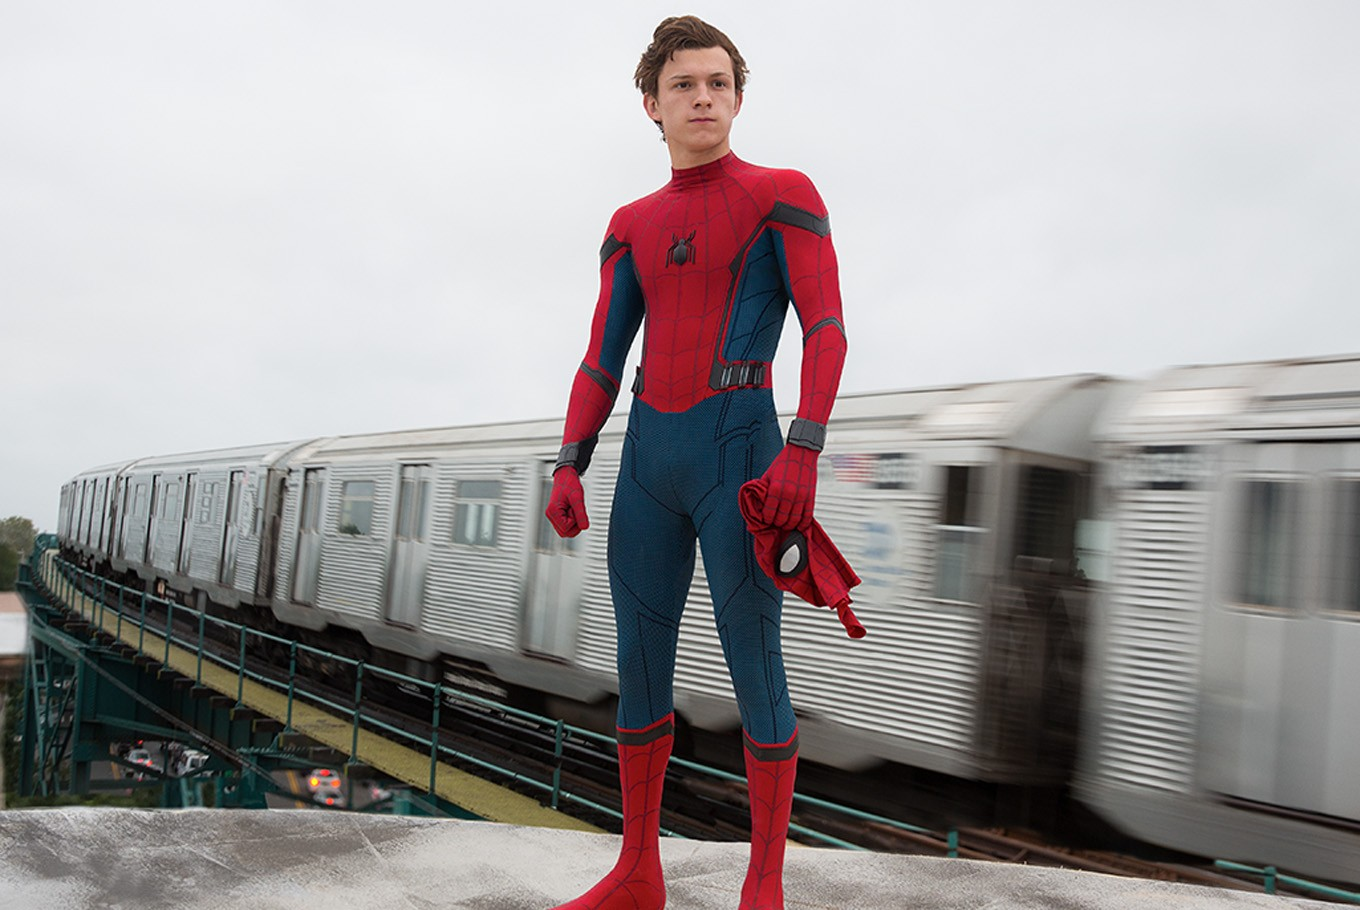 Watching 'Spider-Man' may help with your arachnophobia, study suggests